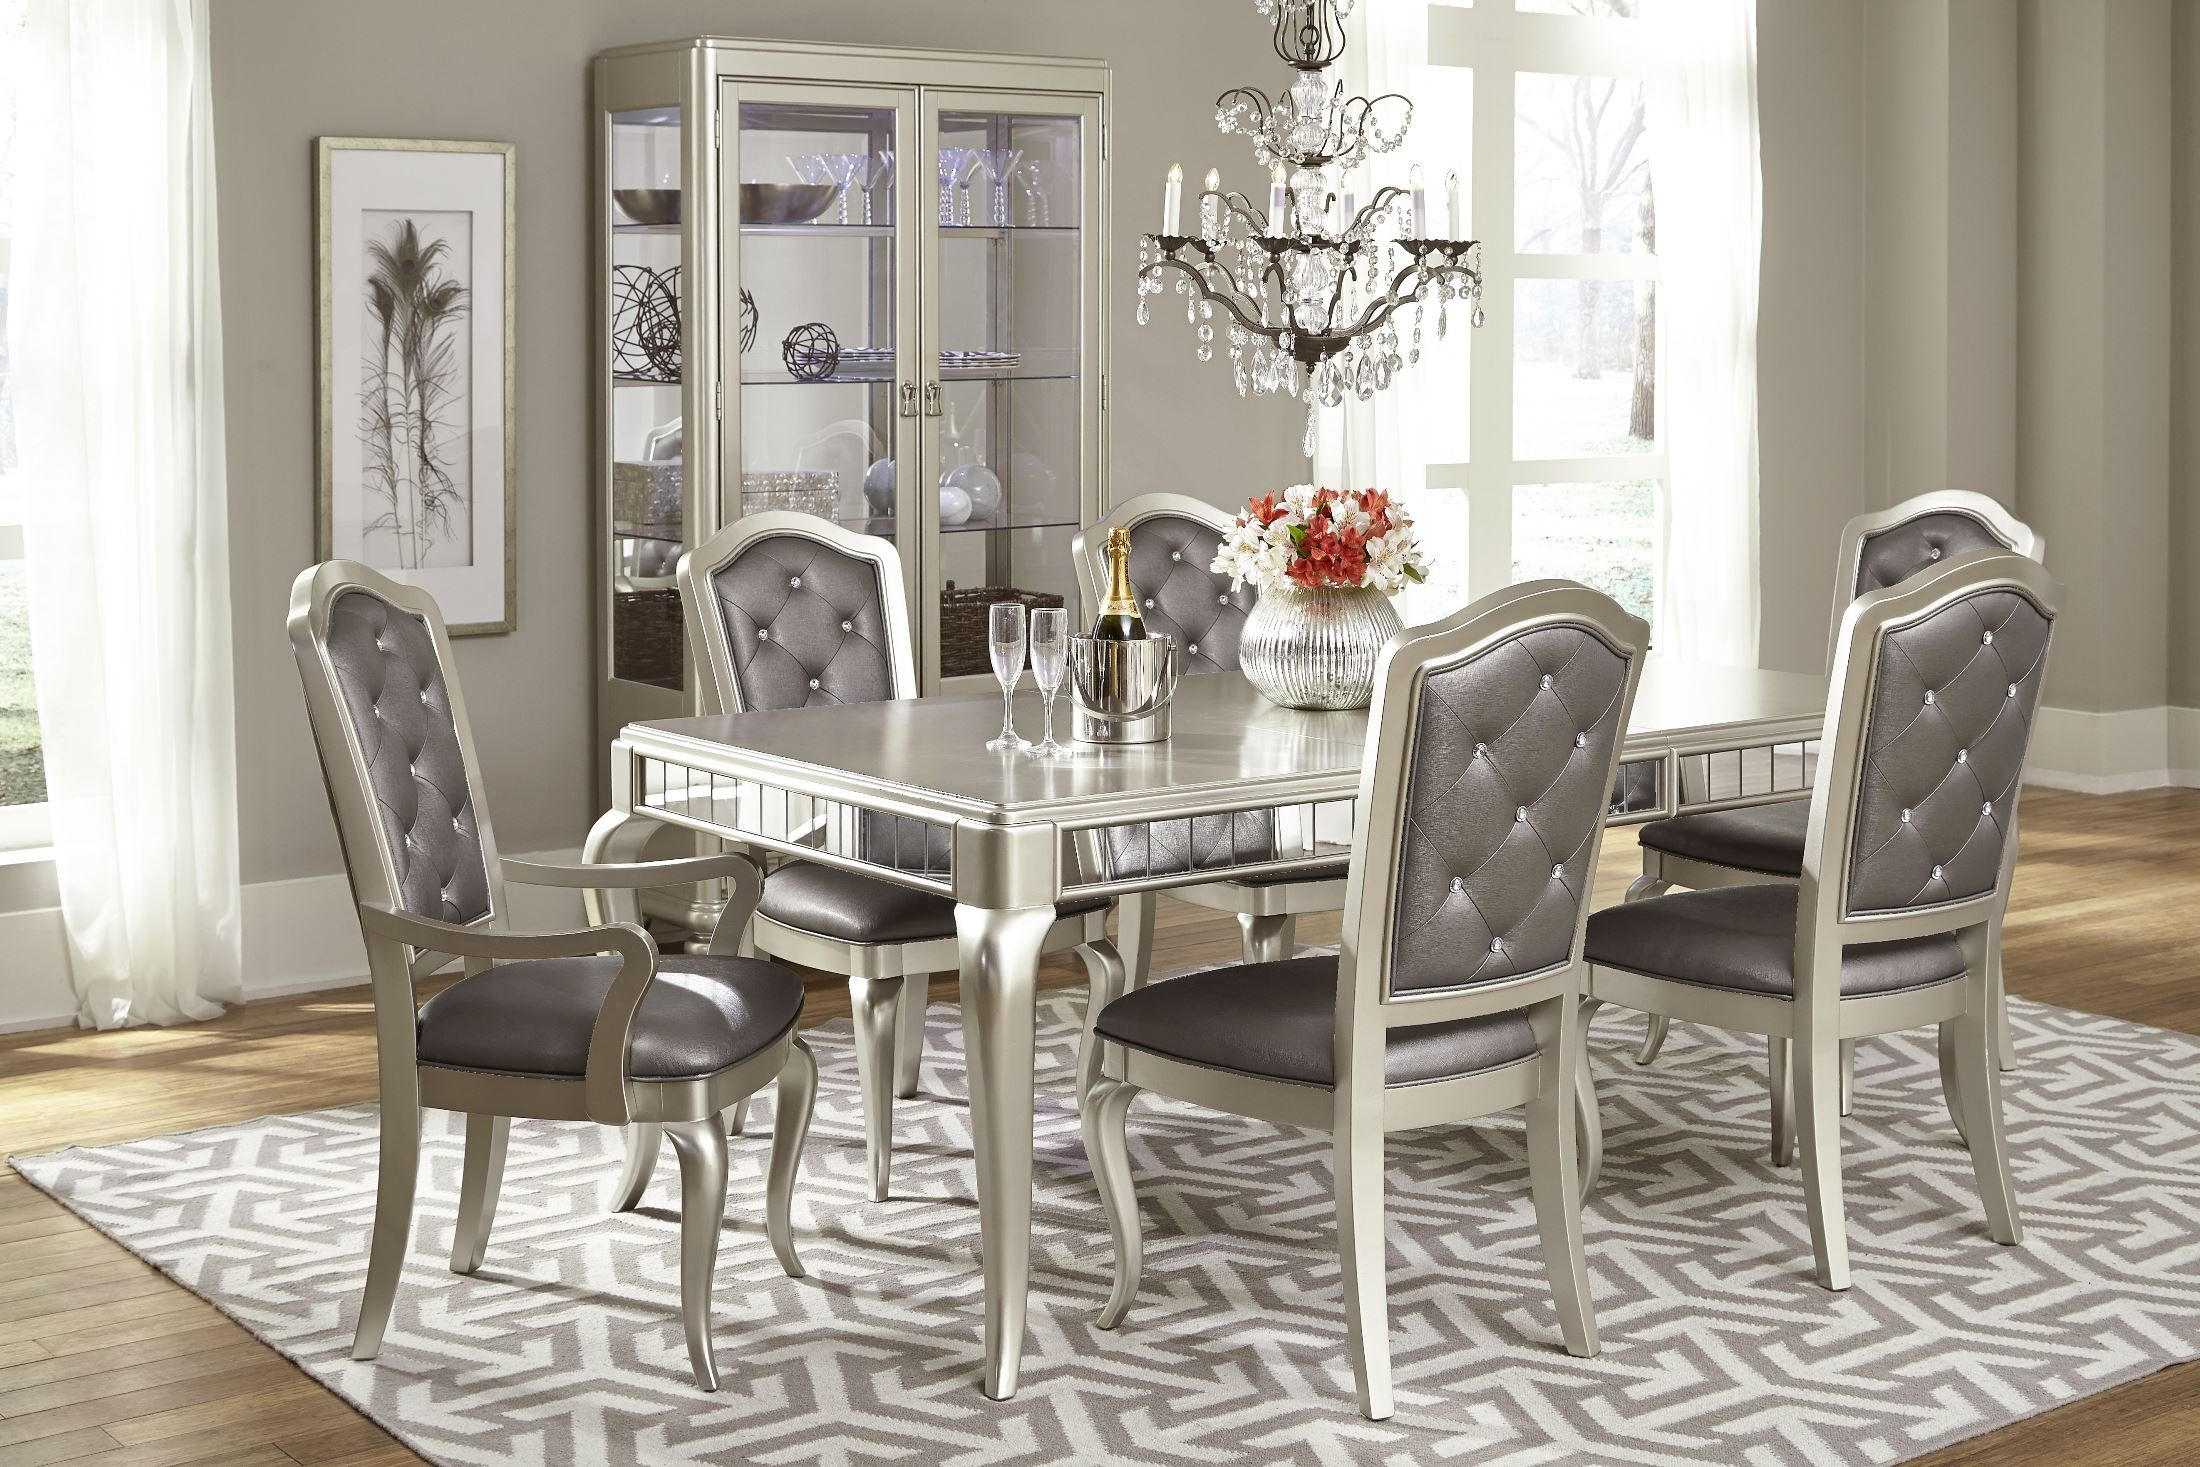 Diva Rectangular Extendable Leg Dining Room Set from Samuel Lawrence